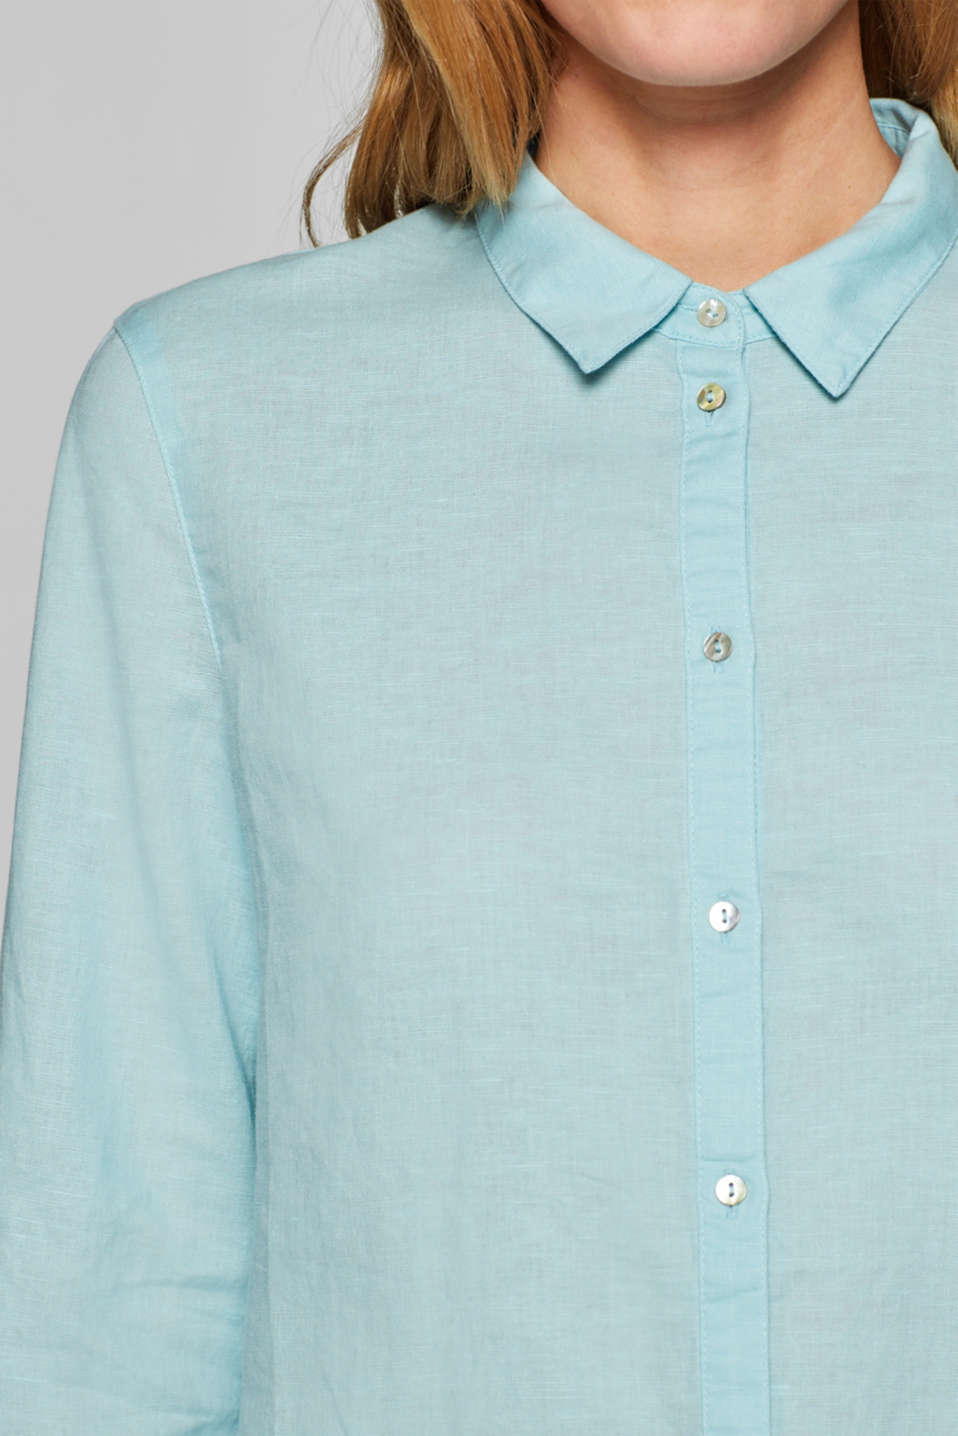 Blouses woven, LIGHT AQUA GREEN, detail image number 6